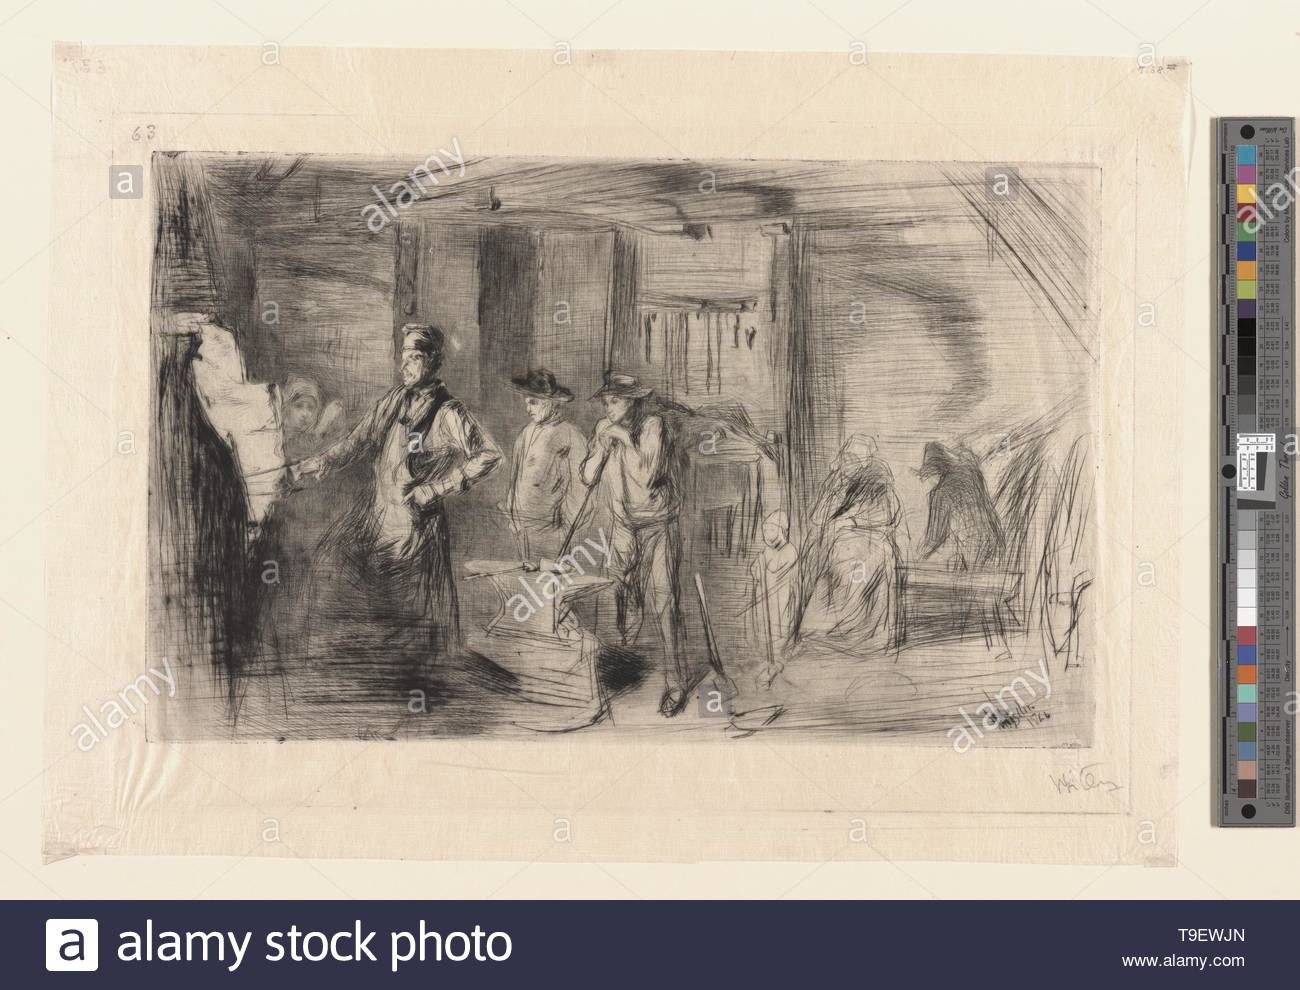 Whistler,JamesMcNeill(1834-1903)-The forge - Stock Image